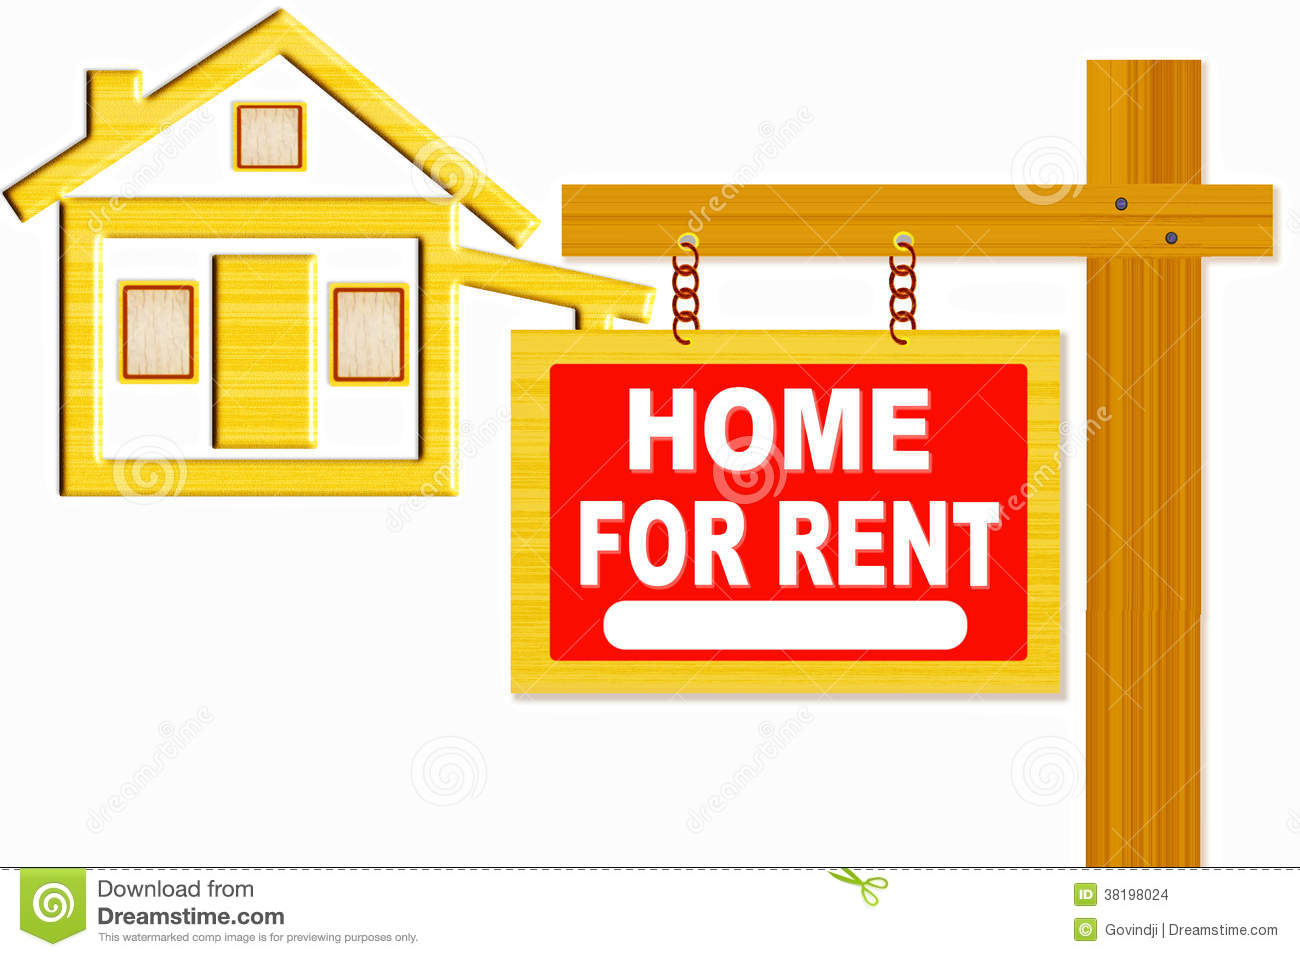 house for rent clipart - photo #11